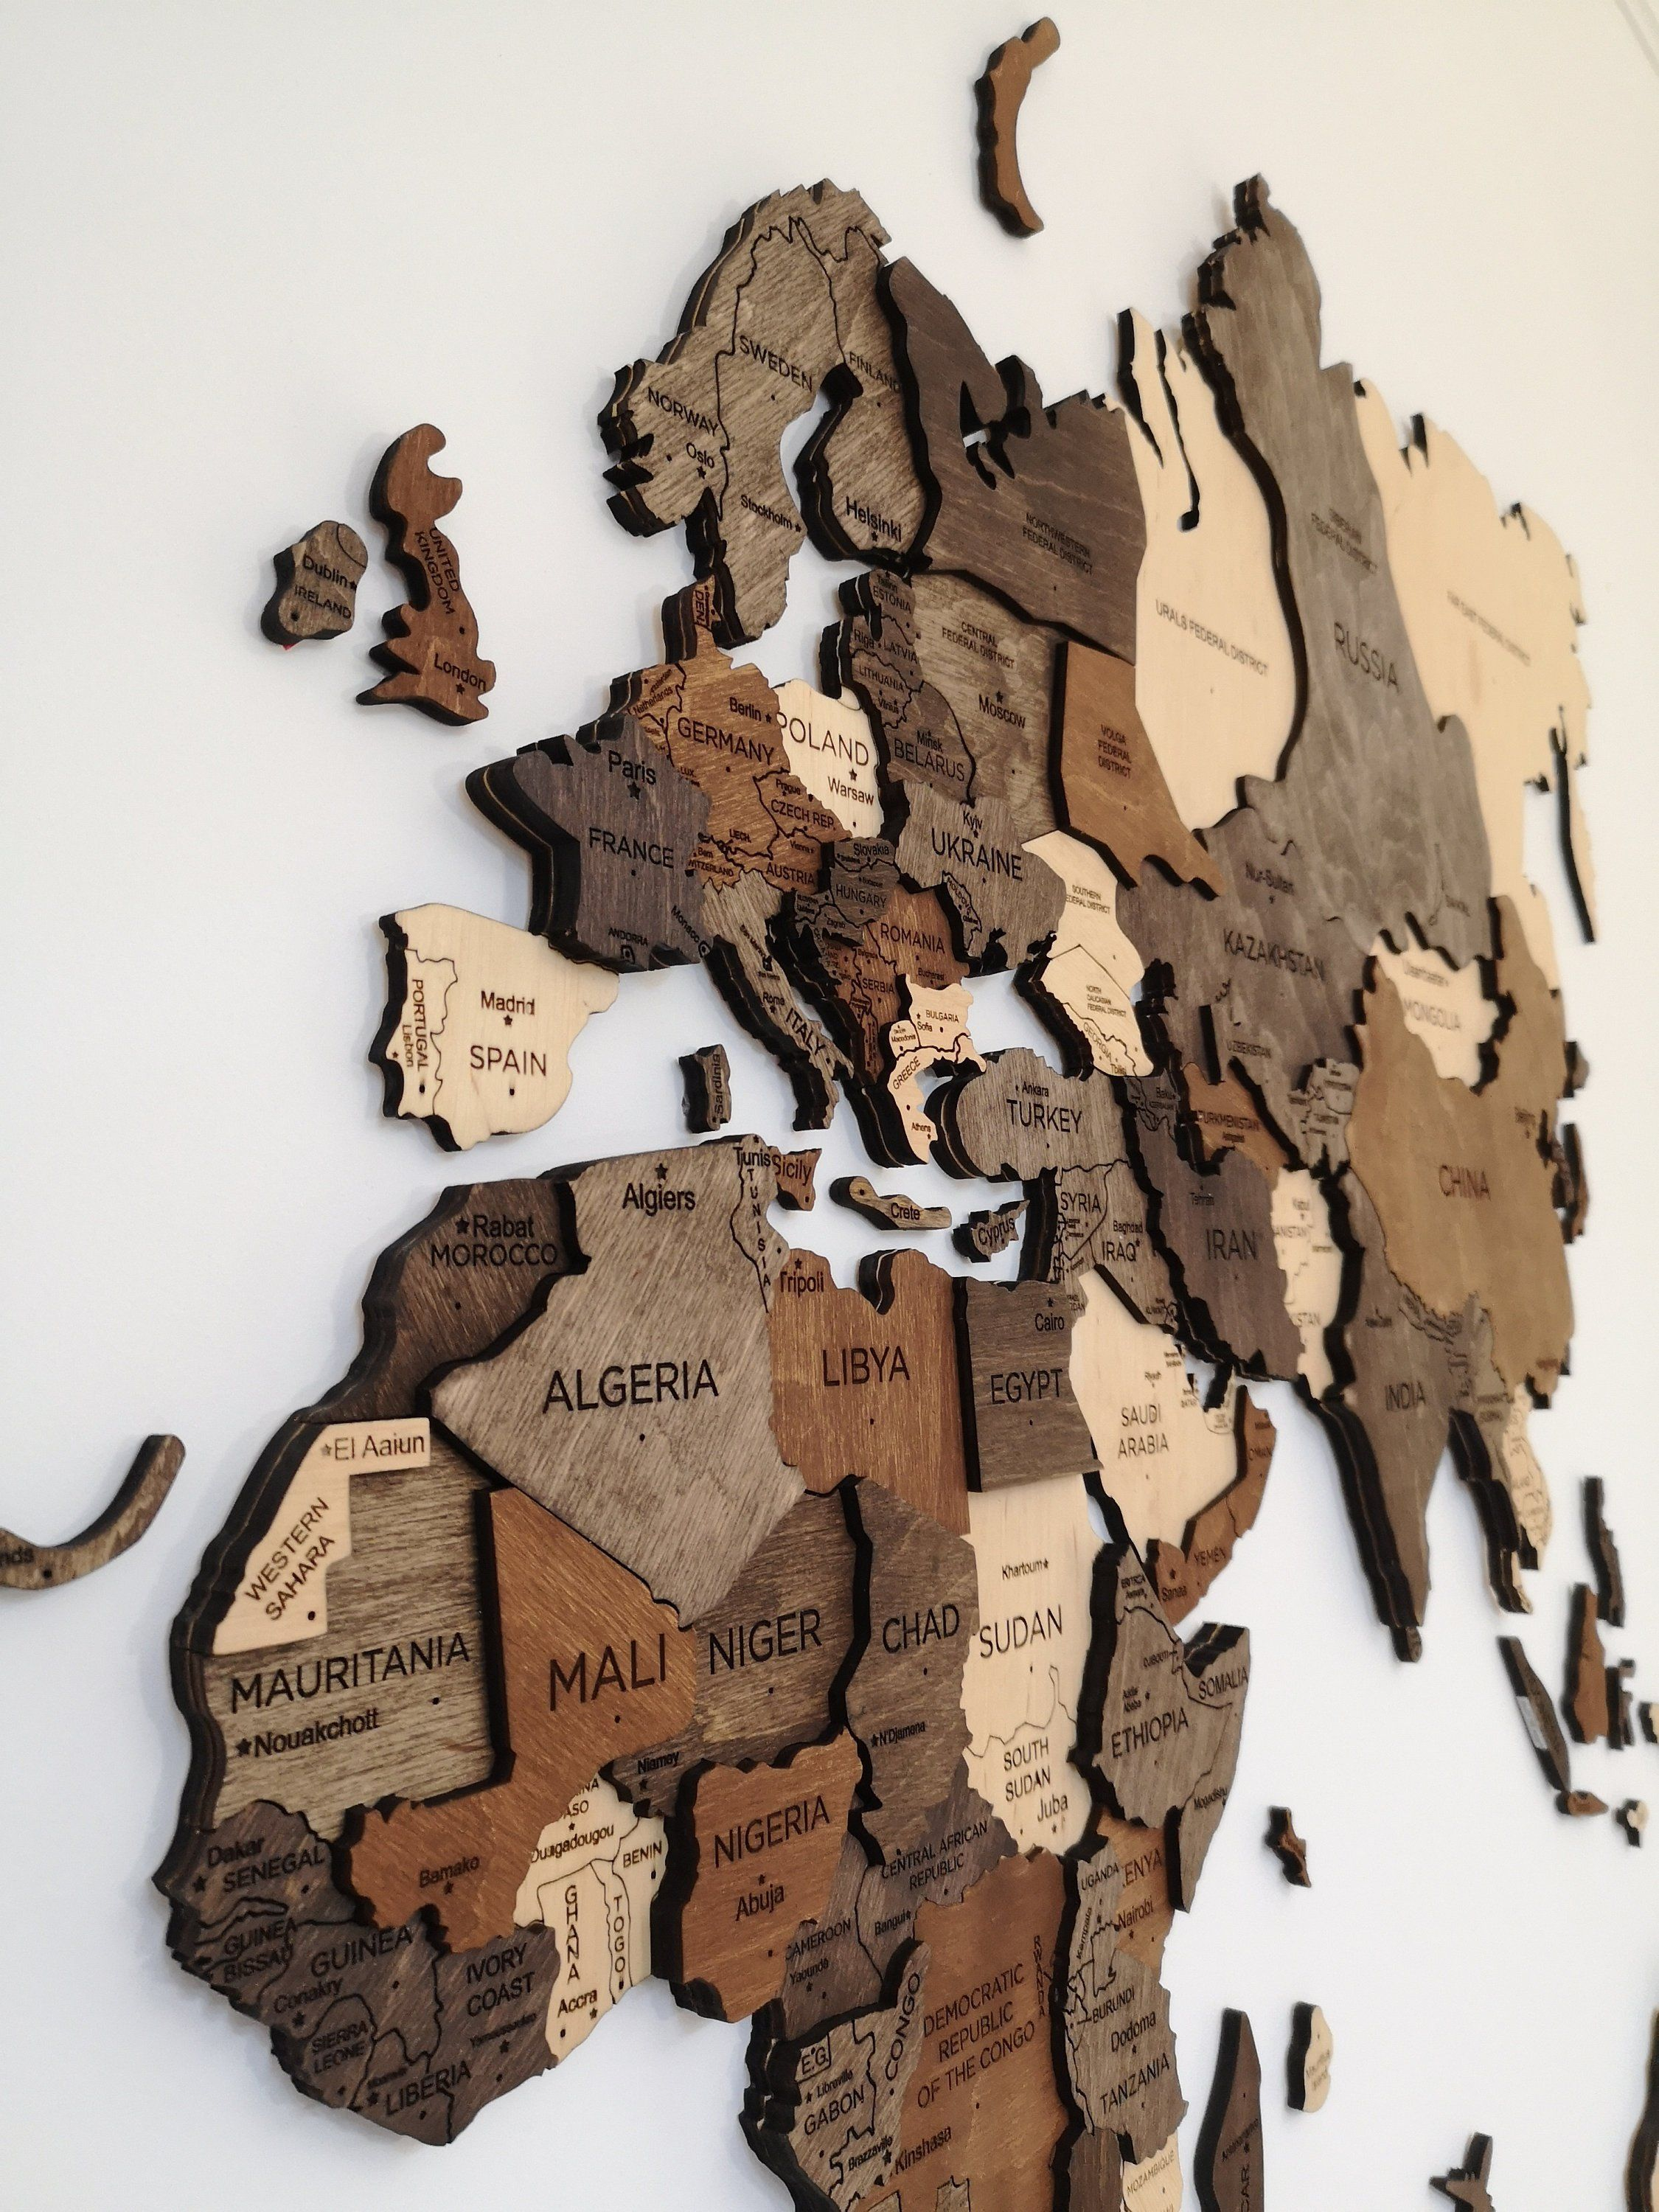 #5th #Anniversary #Art #Boyfriend #Decor #gift #home #Husband #Map #Pin #Push #rustic #Travel #Wall #wood #wooden #World